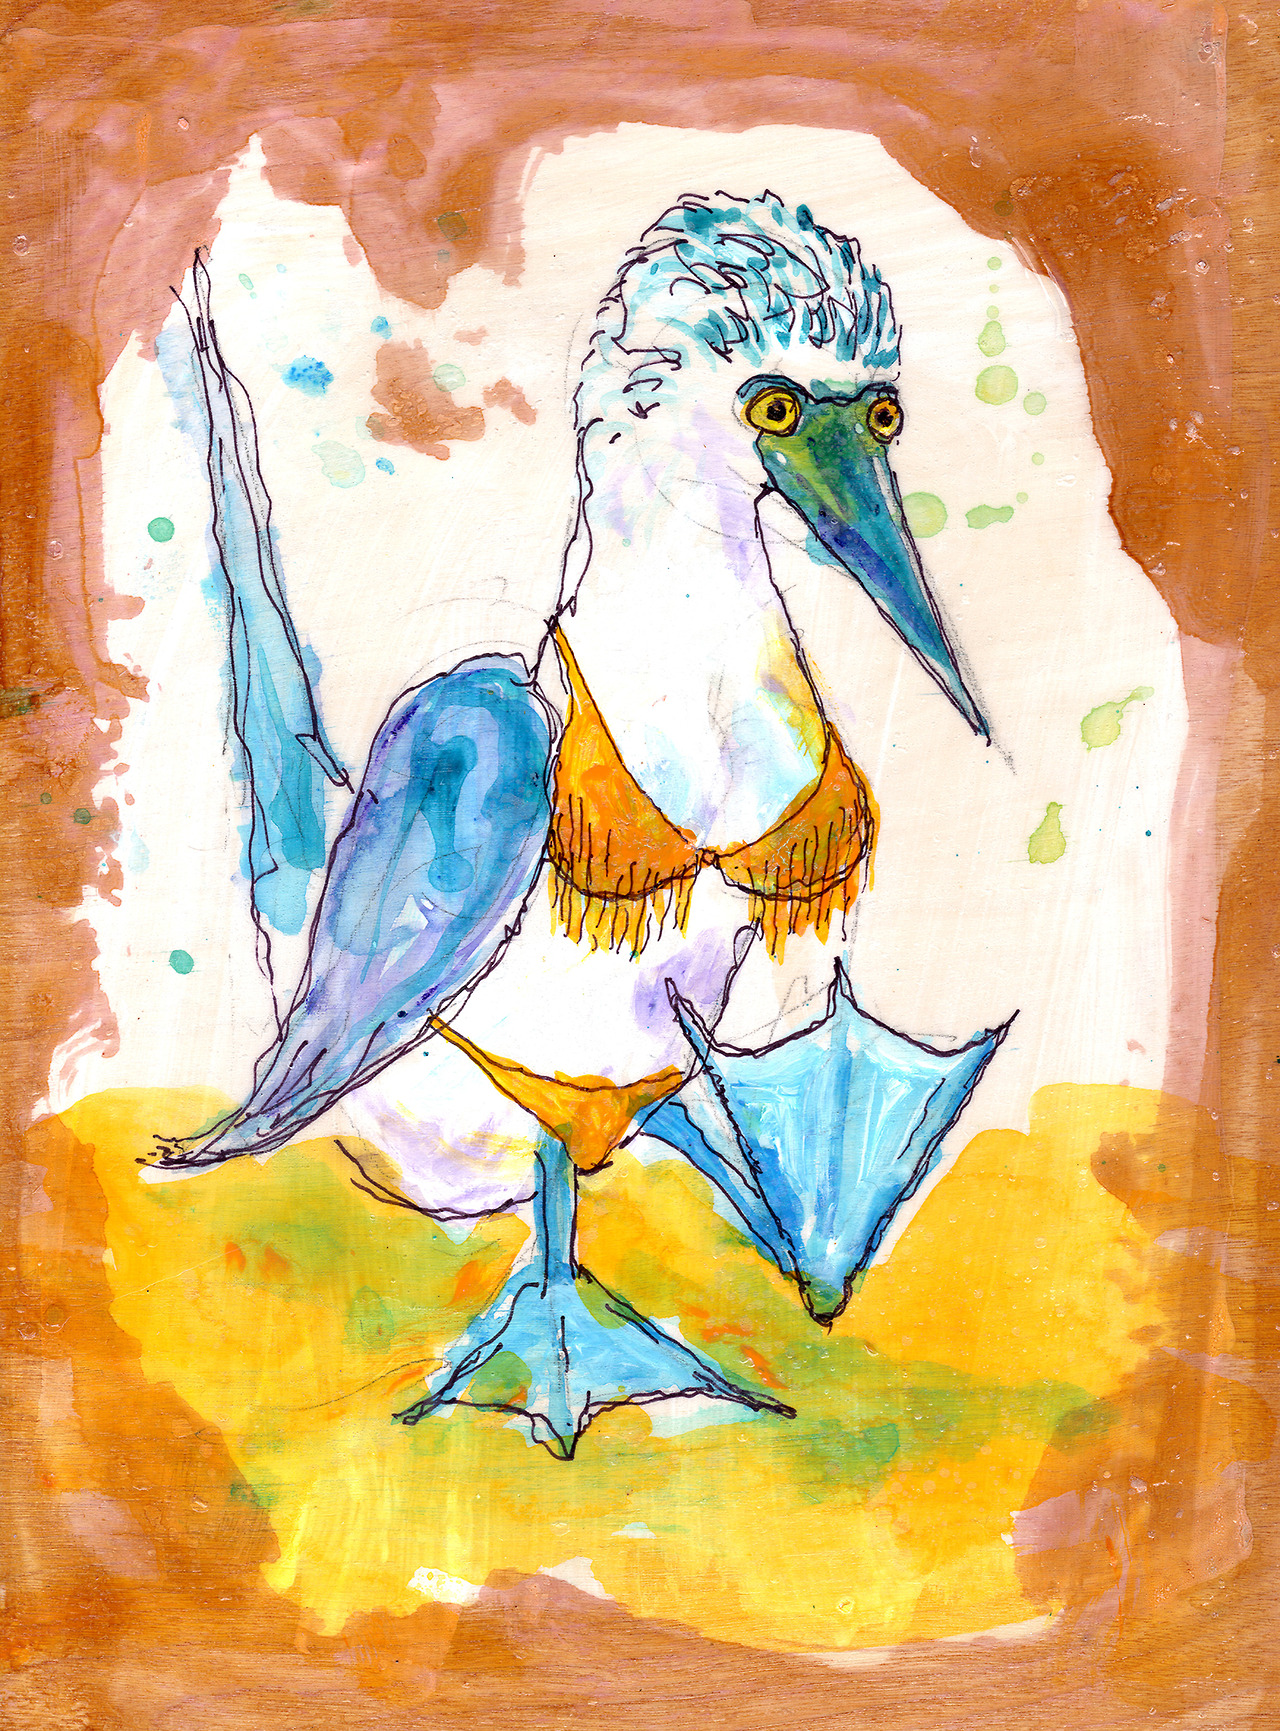 10/22/13 -  Bikini Baring Blue Footed Booby.    It's booby Tuesday.    Buy it here -  http://taylorwinder.bigcartel.com    Prints here -  http://society6.com/taylorwinder